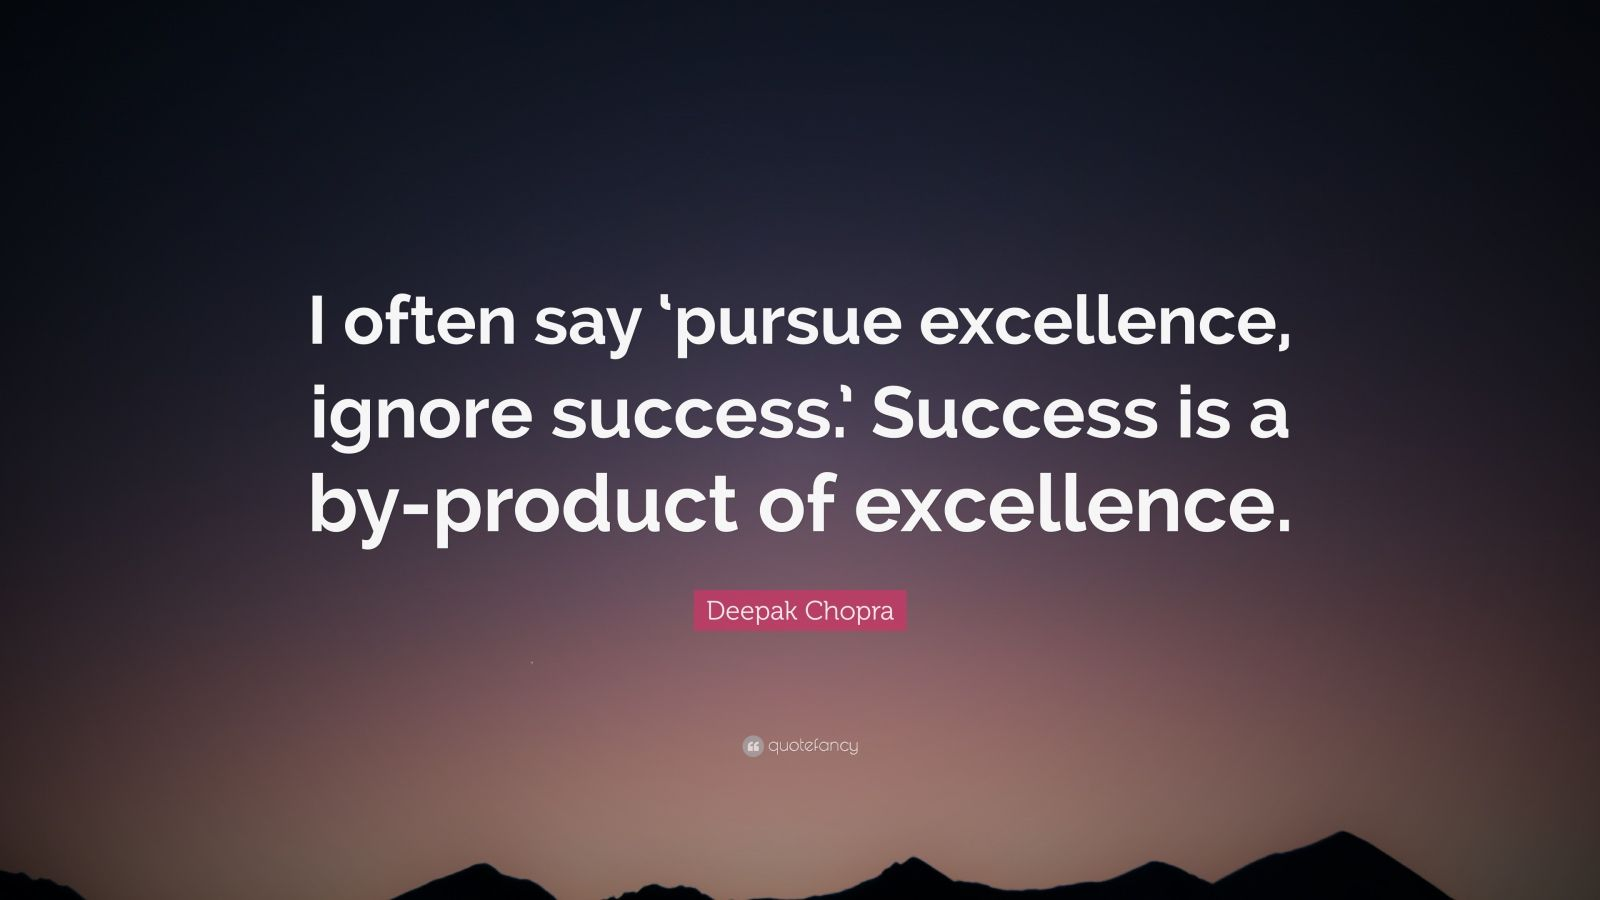 """Deepak Chopra Quote: """"I often say 'pursue excellence, ignore success.' Success is a by-product of excellence."""""""